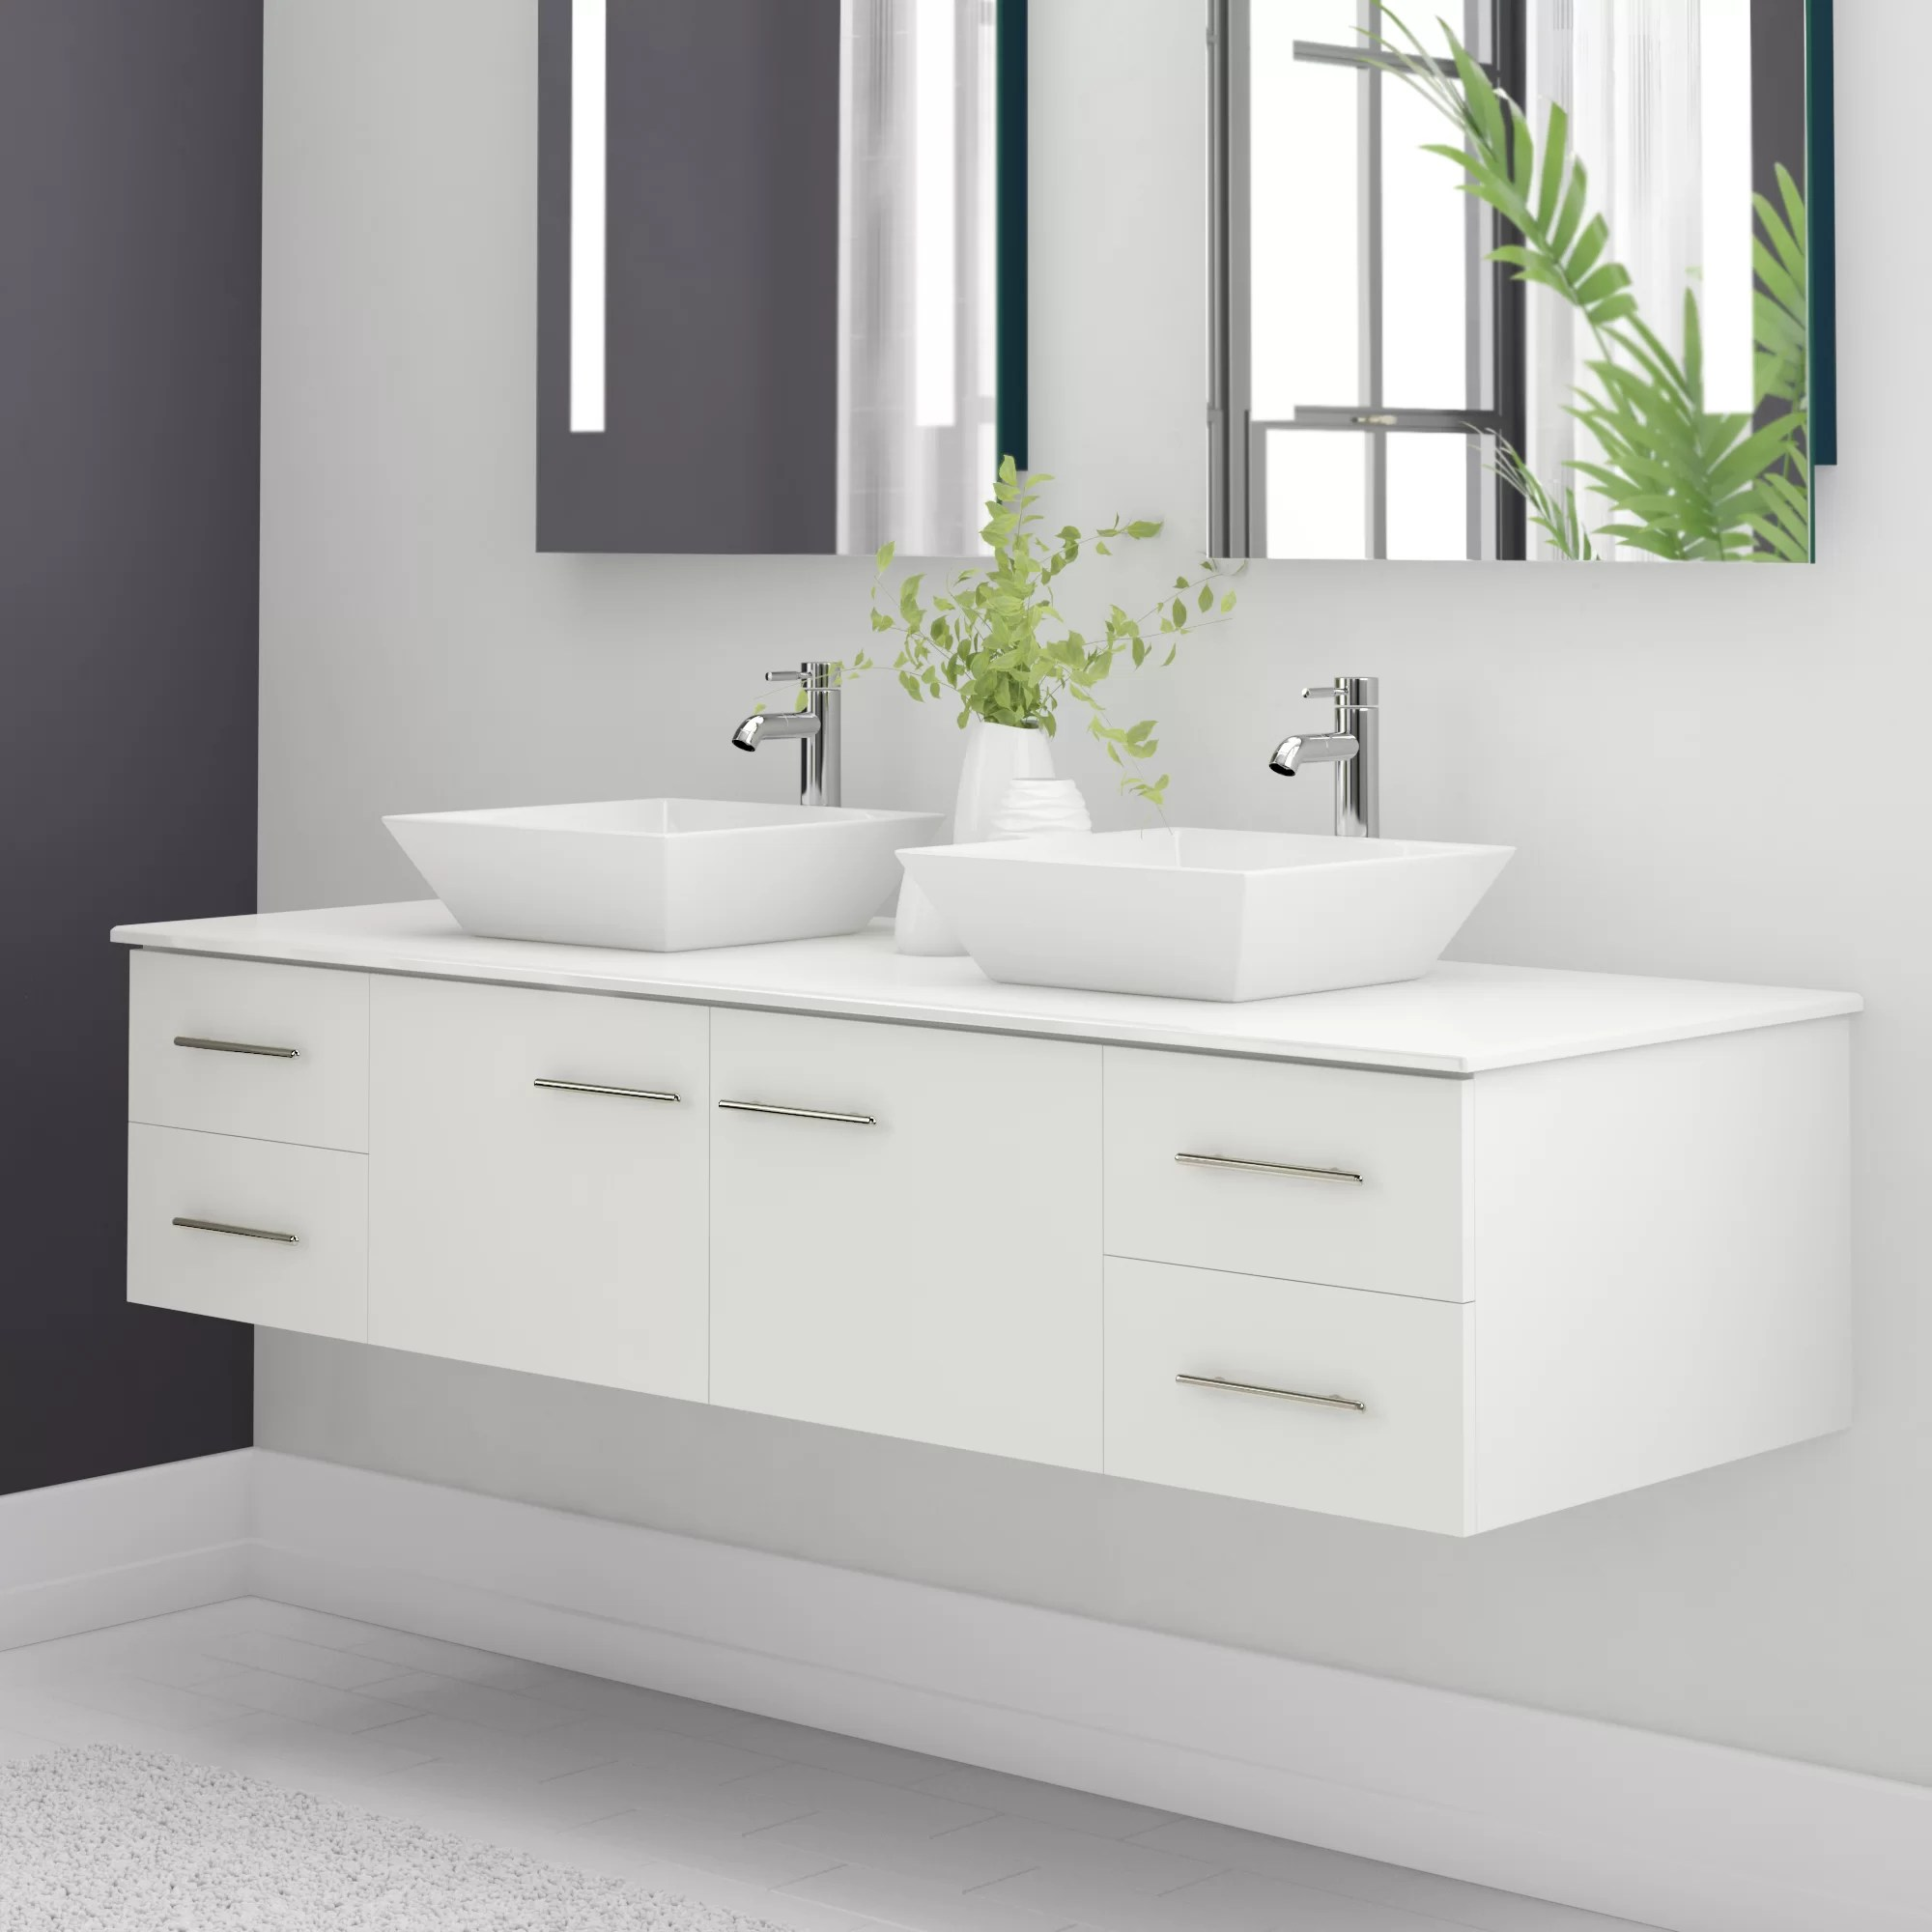 Wall Mount Double Vanity Vinit 60